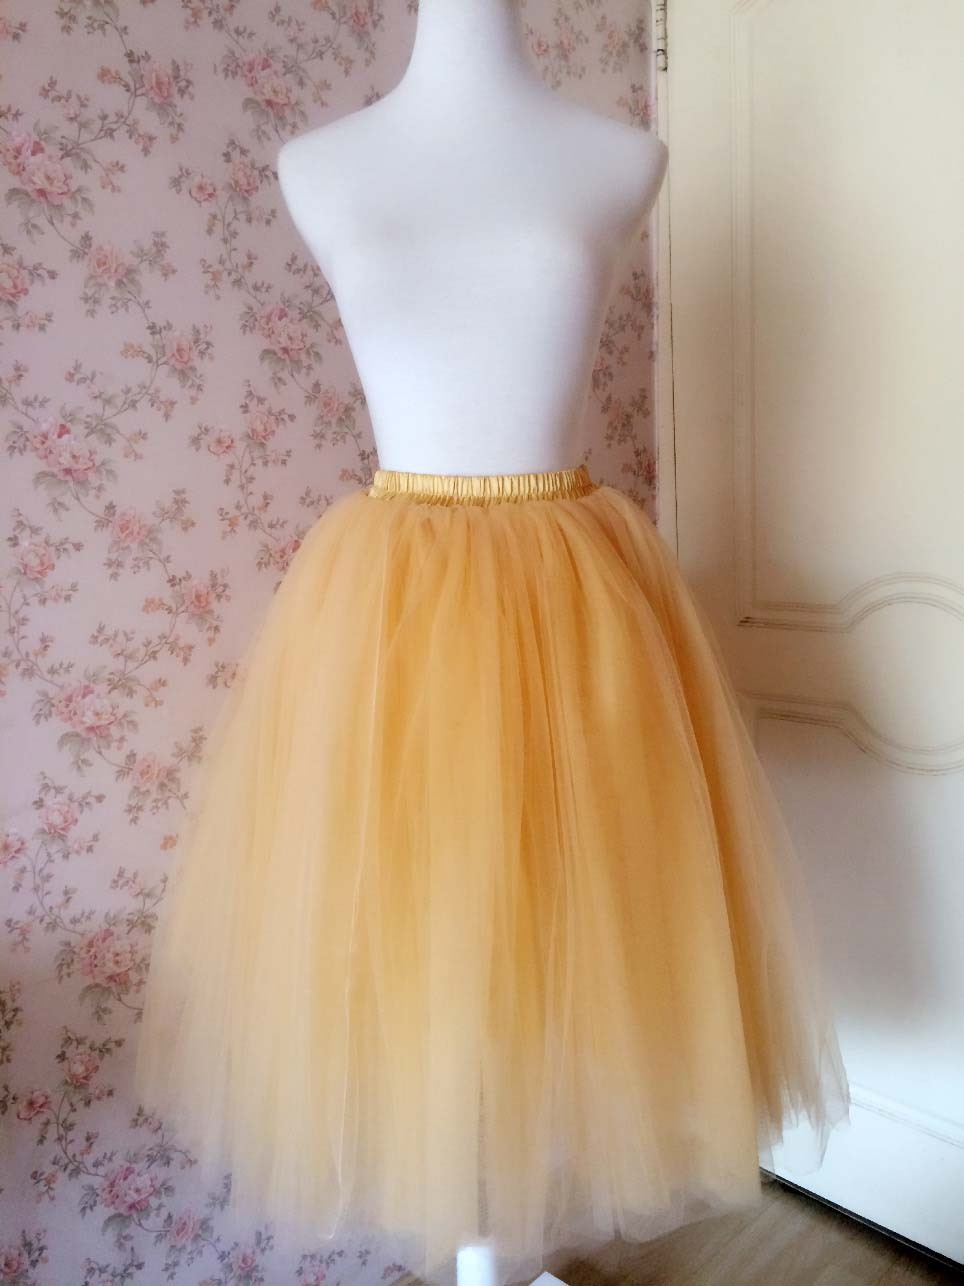 6 Layered Tulle Tutu Skirt Puffy Ballerina Tulle Skirt Apricot Plus Size